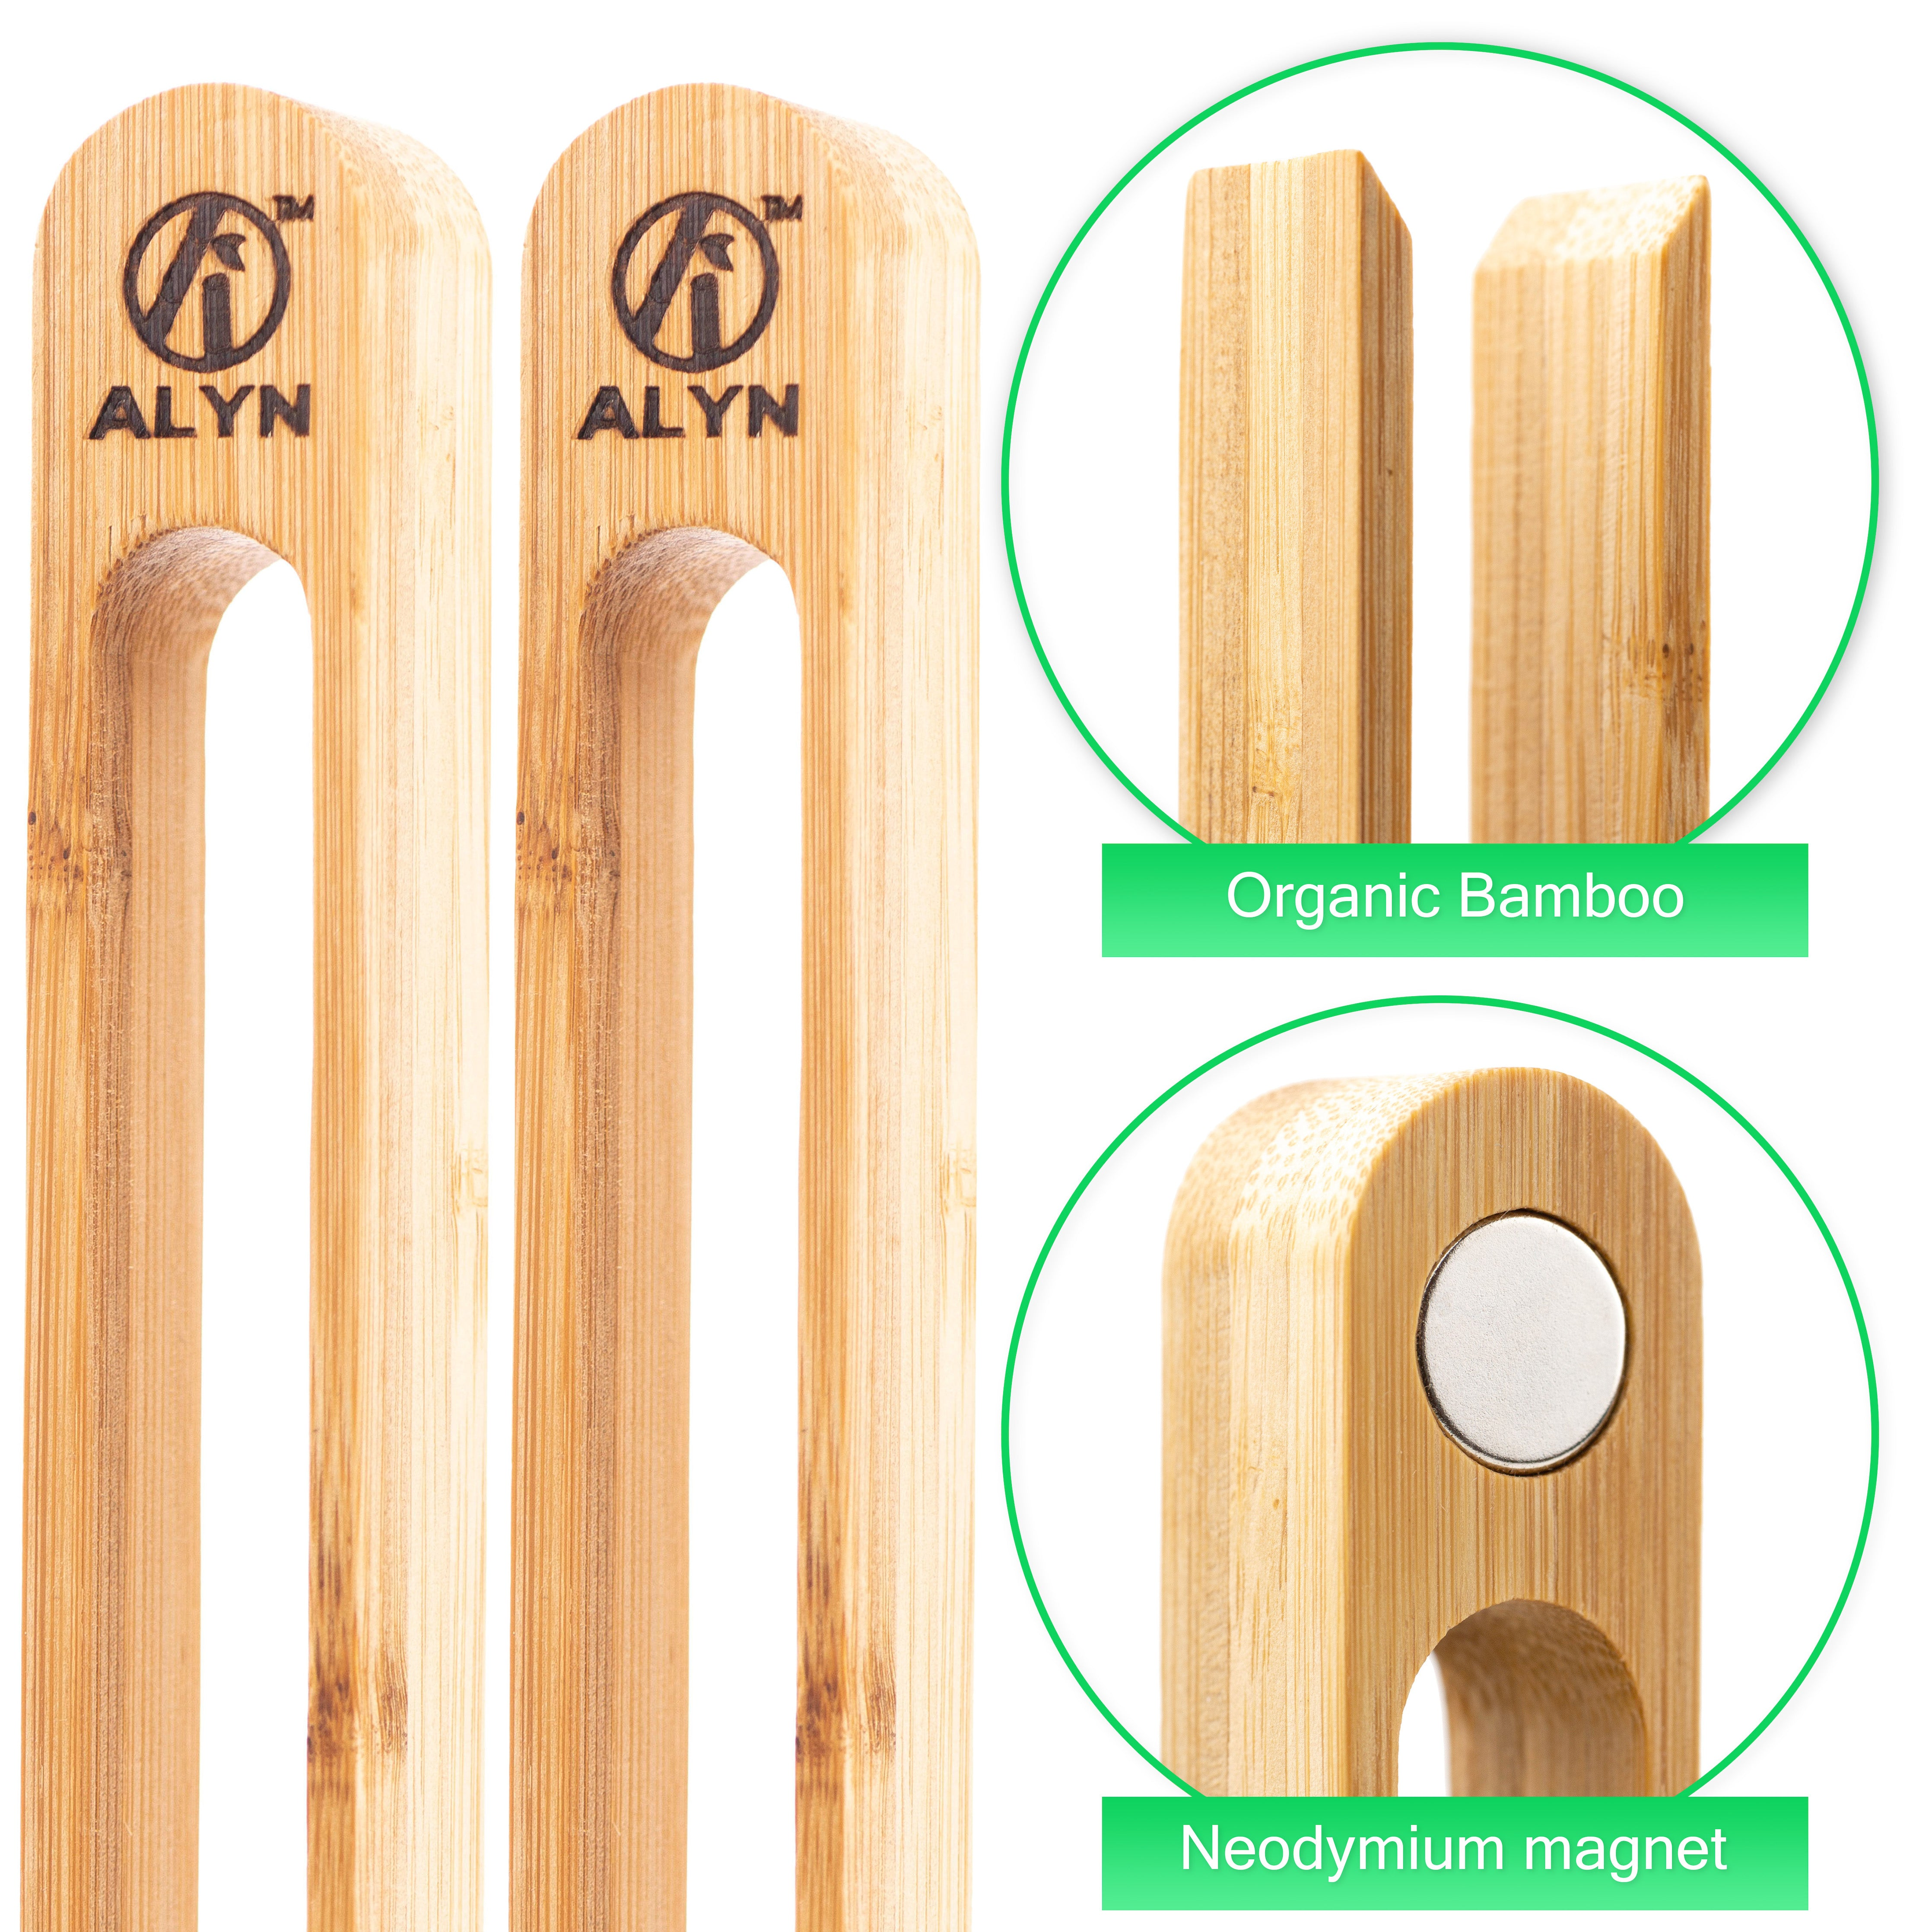 Bamboo Magnetic Toast Tongs - ecoalyn